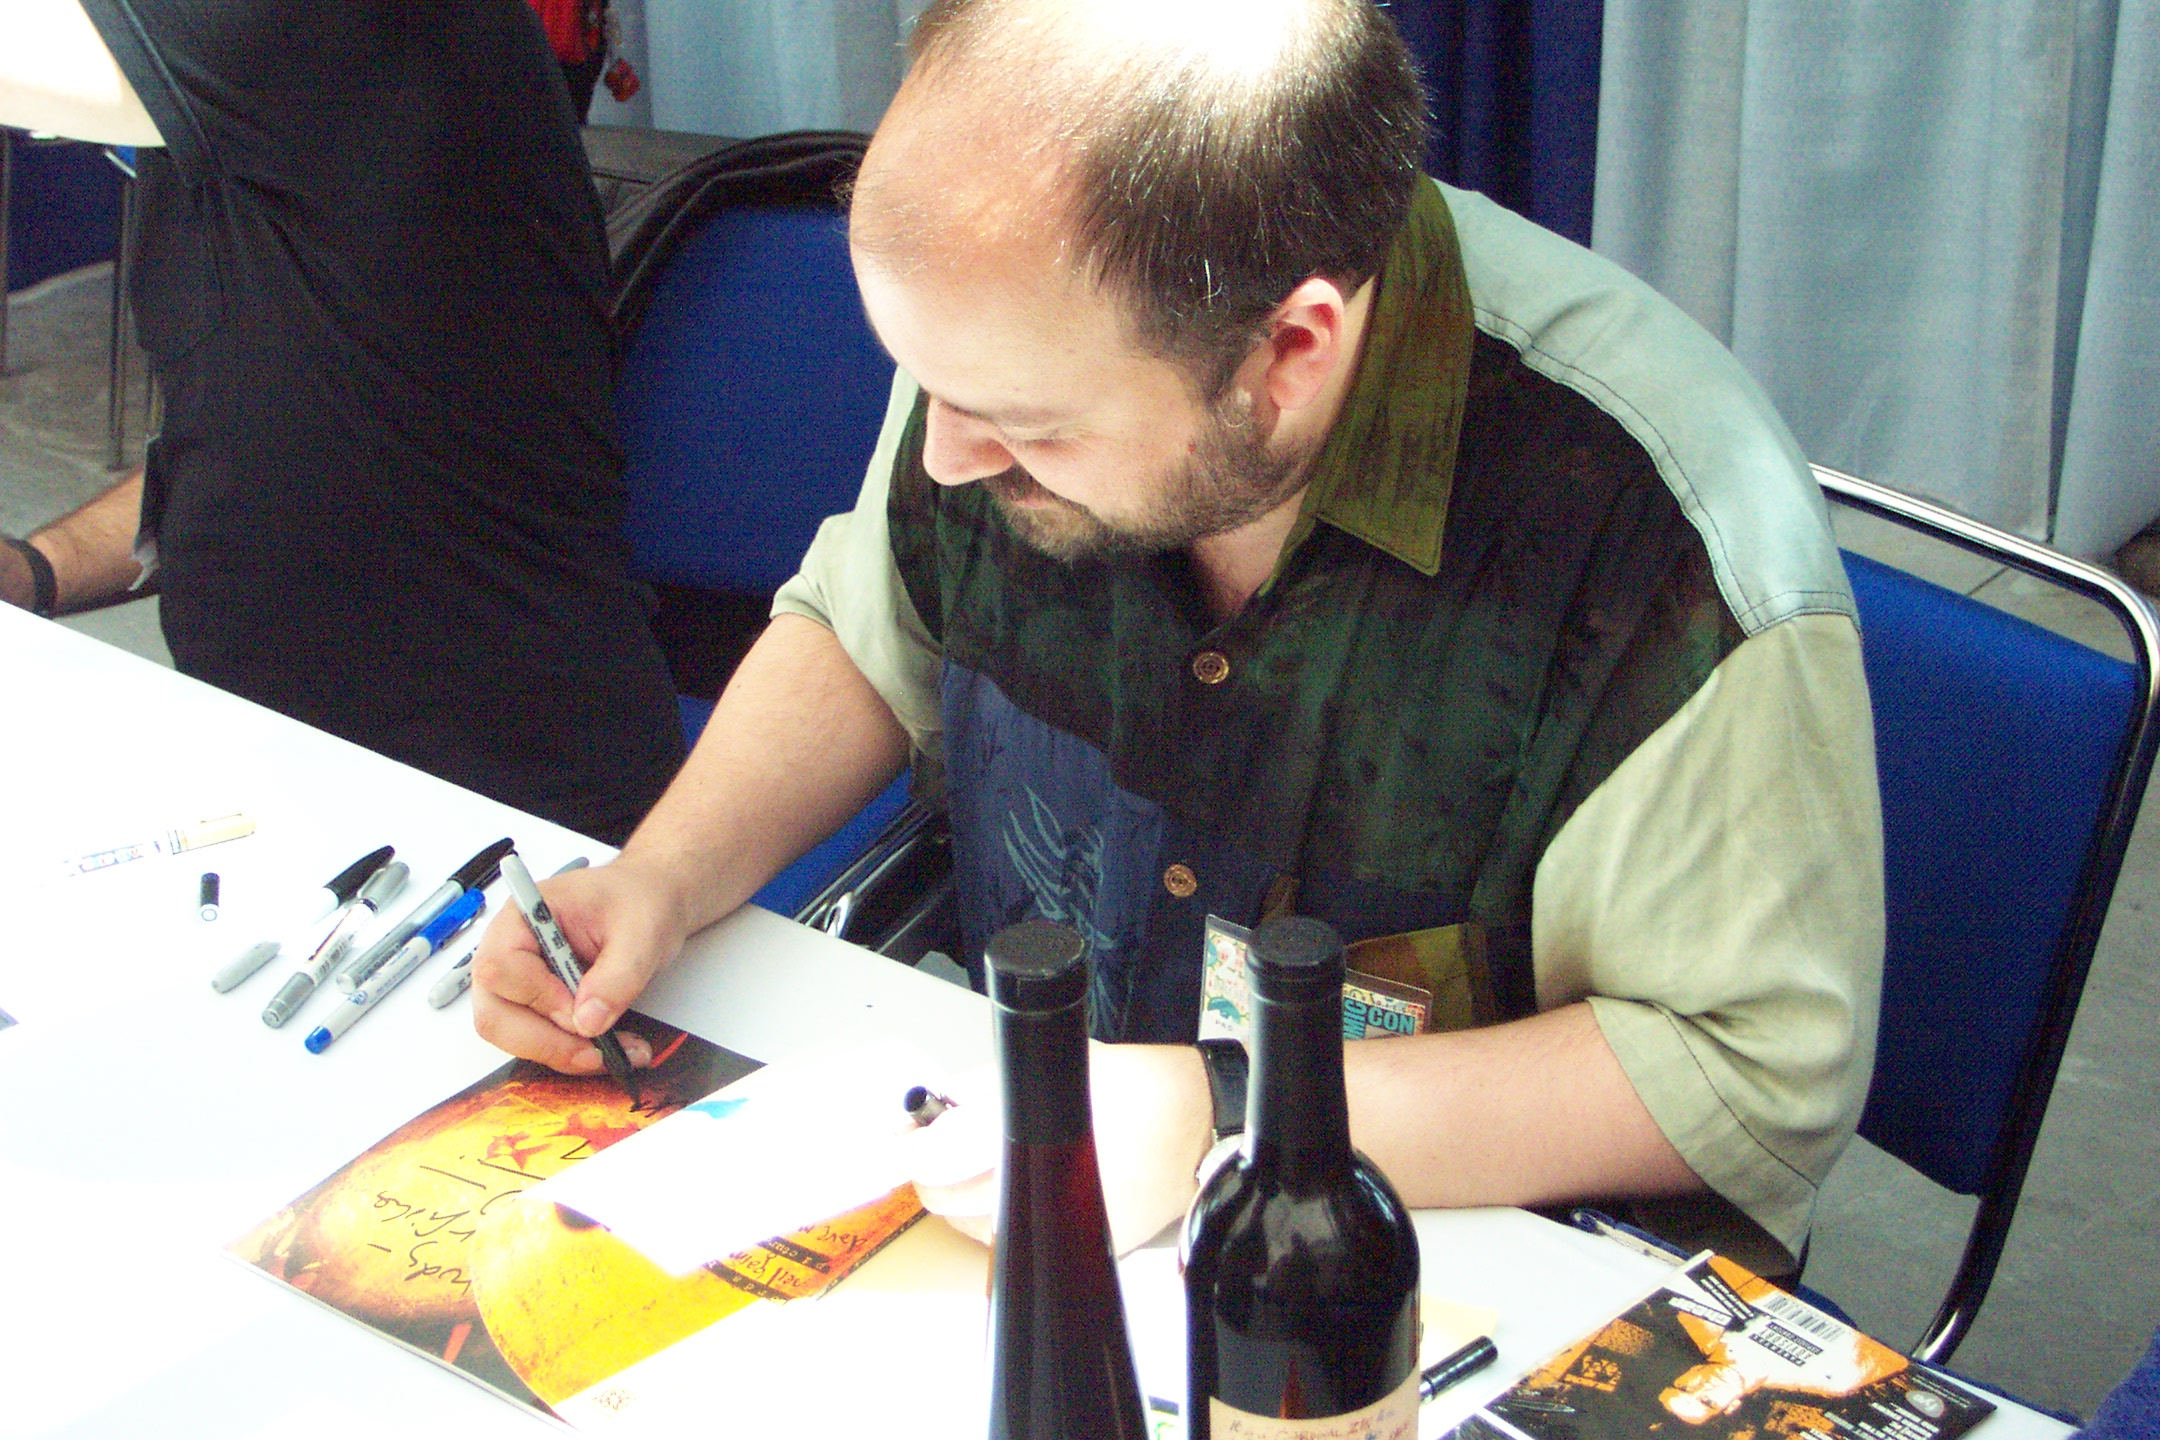 Image of Dave McKean from Wikidata